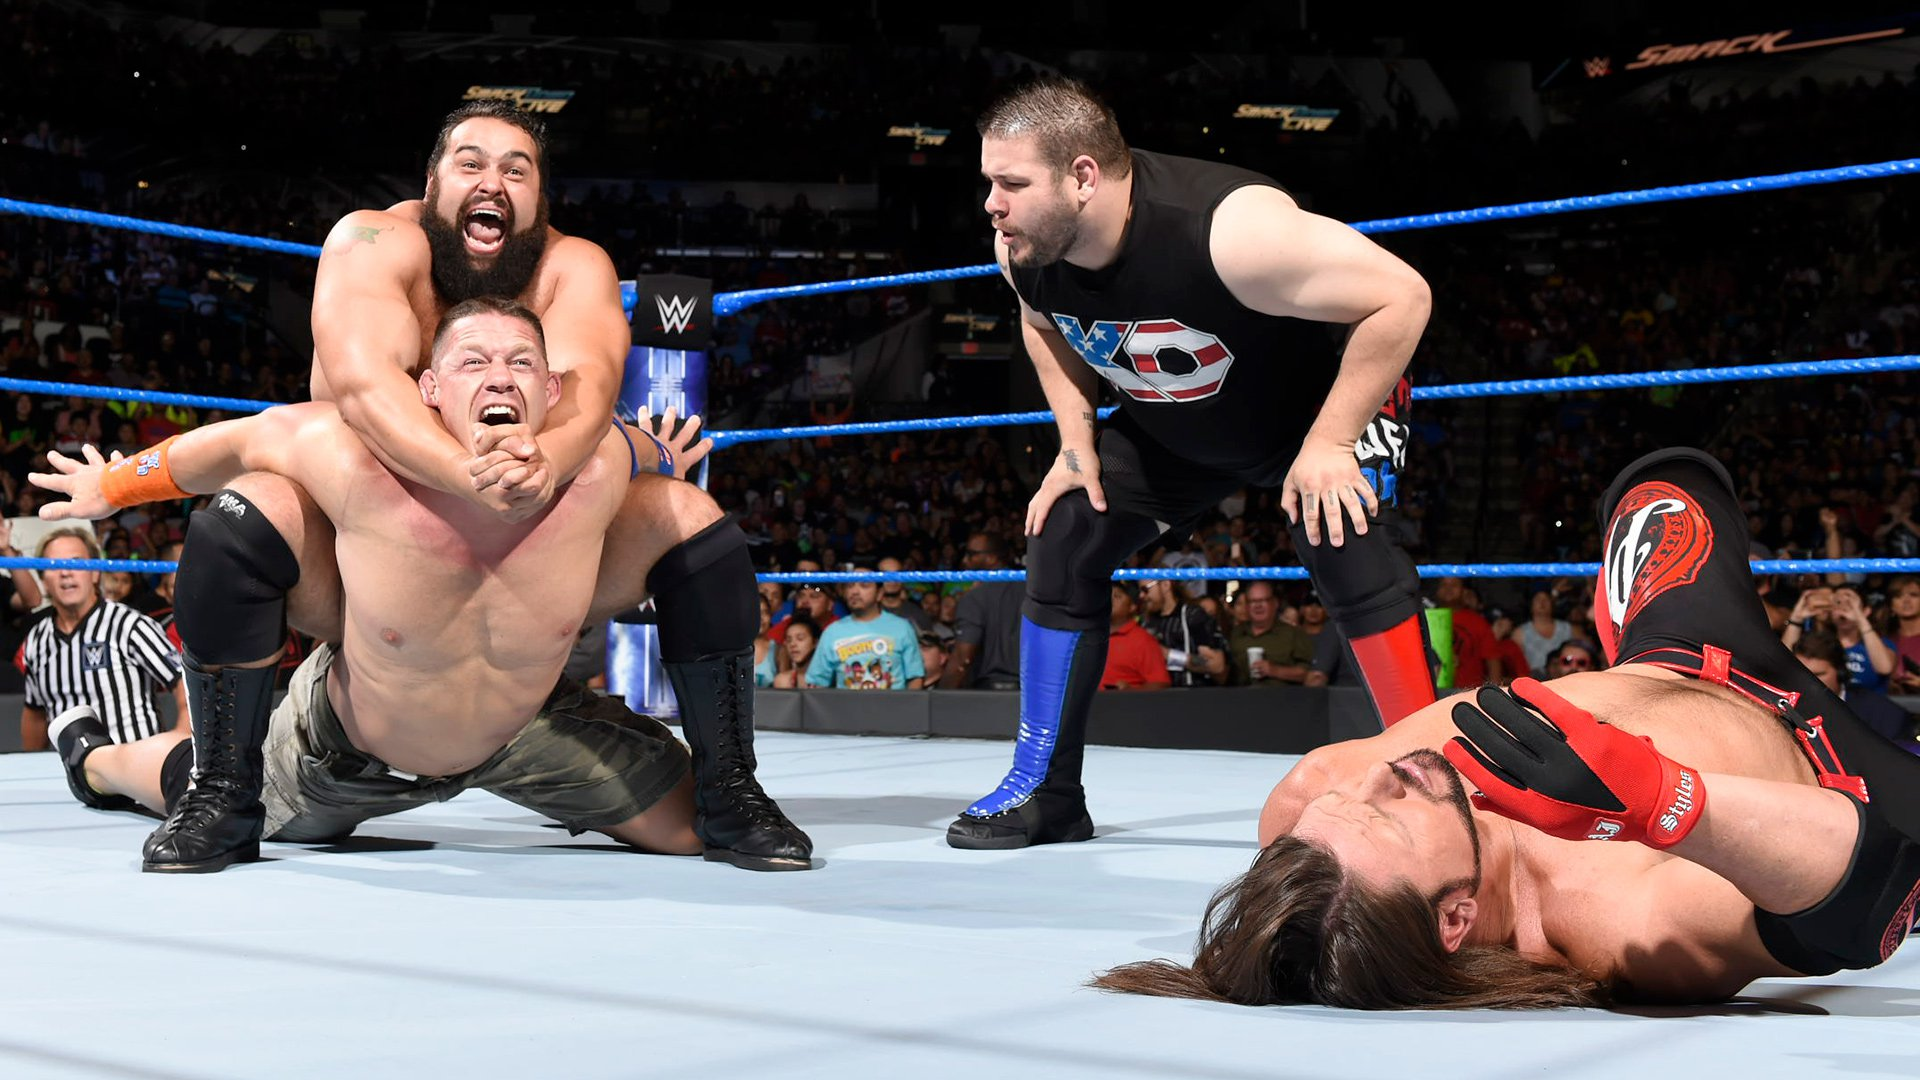 The Bulgarian Brute locks Cena in his devastating Accolade as Owens continues to talk smack.